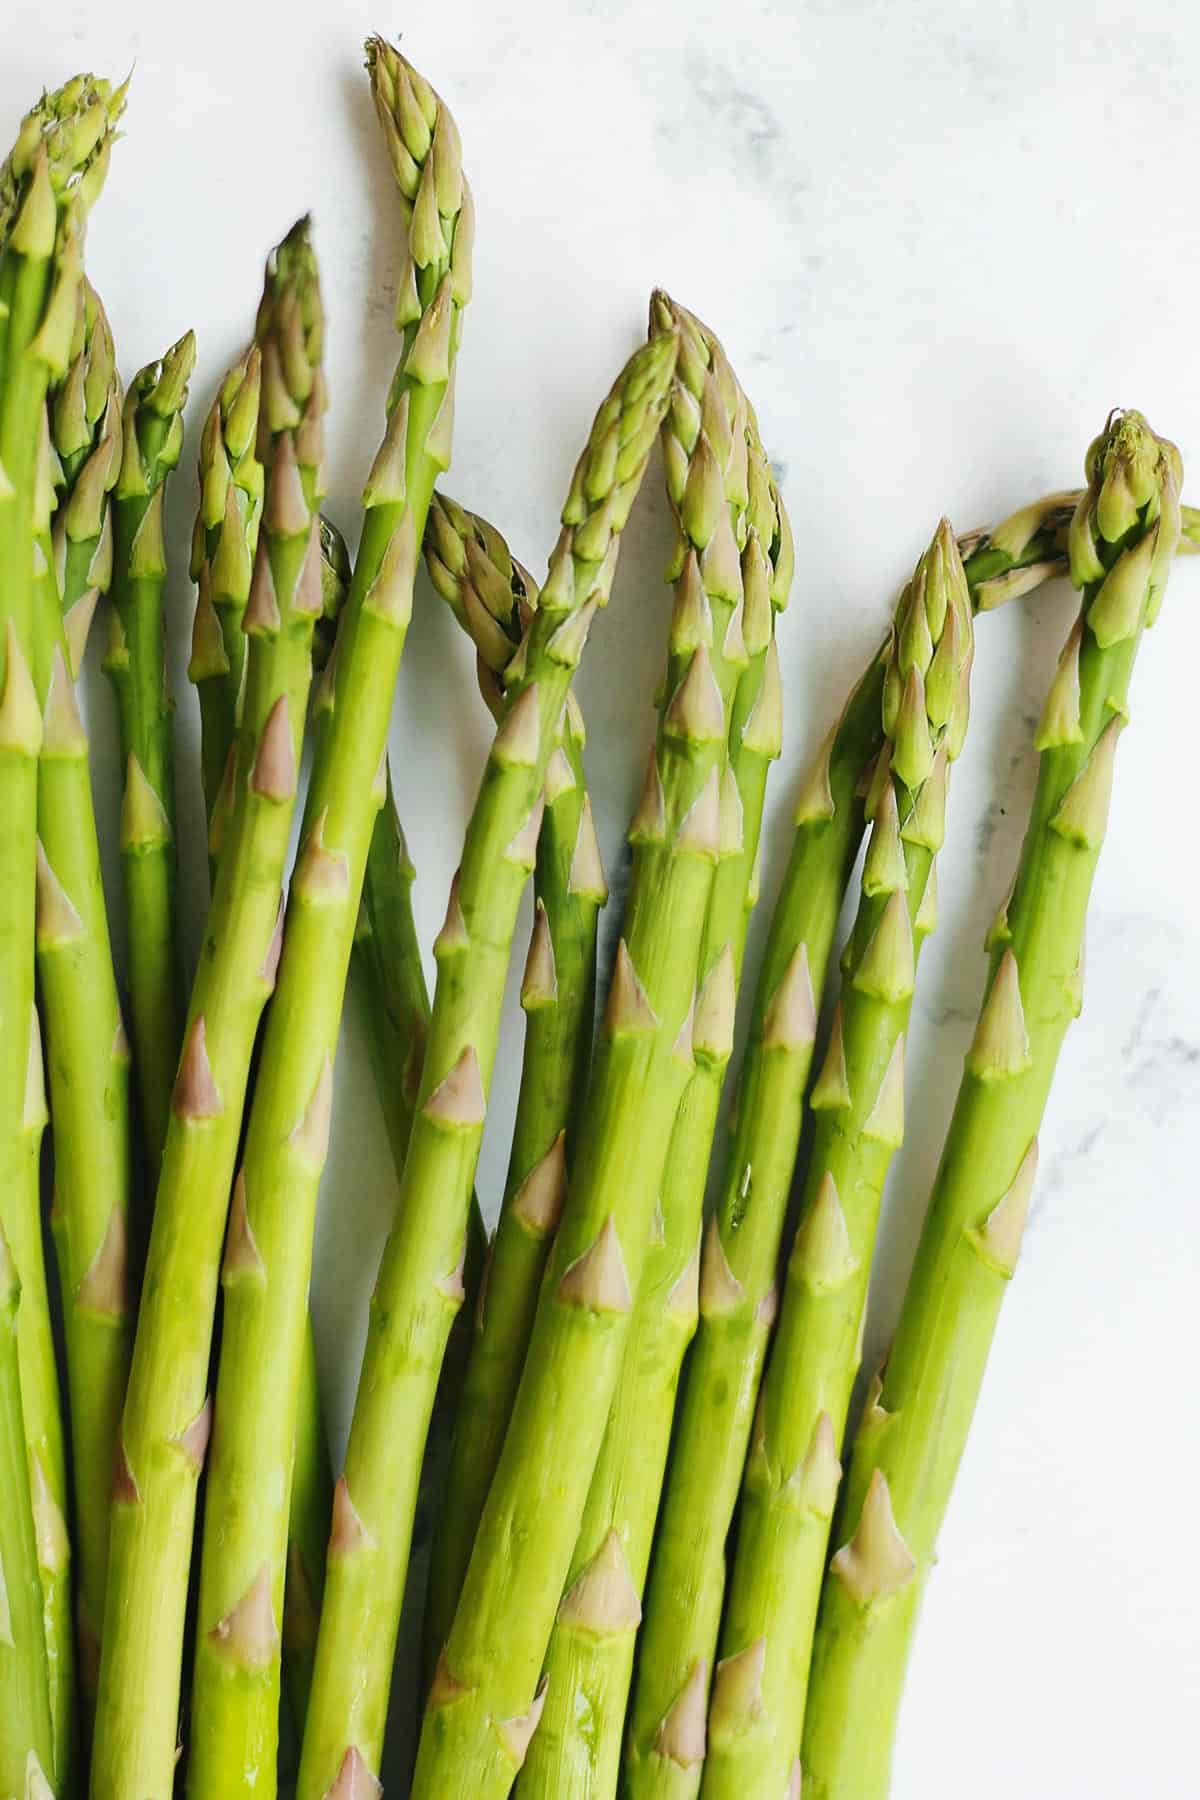 Asparagus spears close up